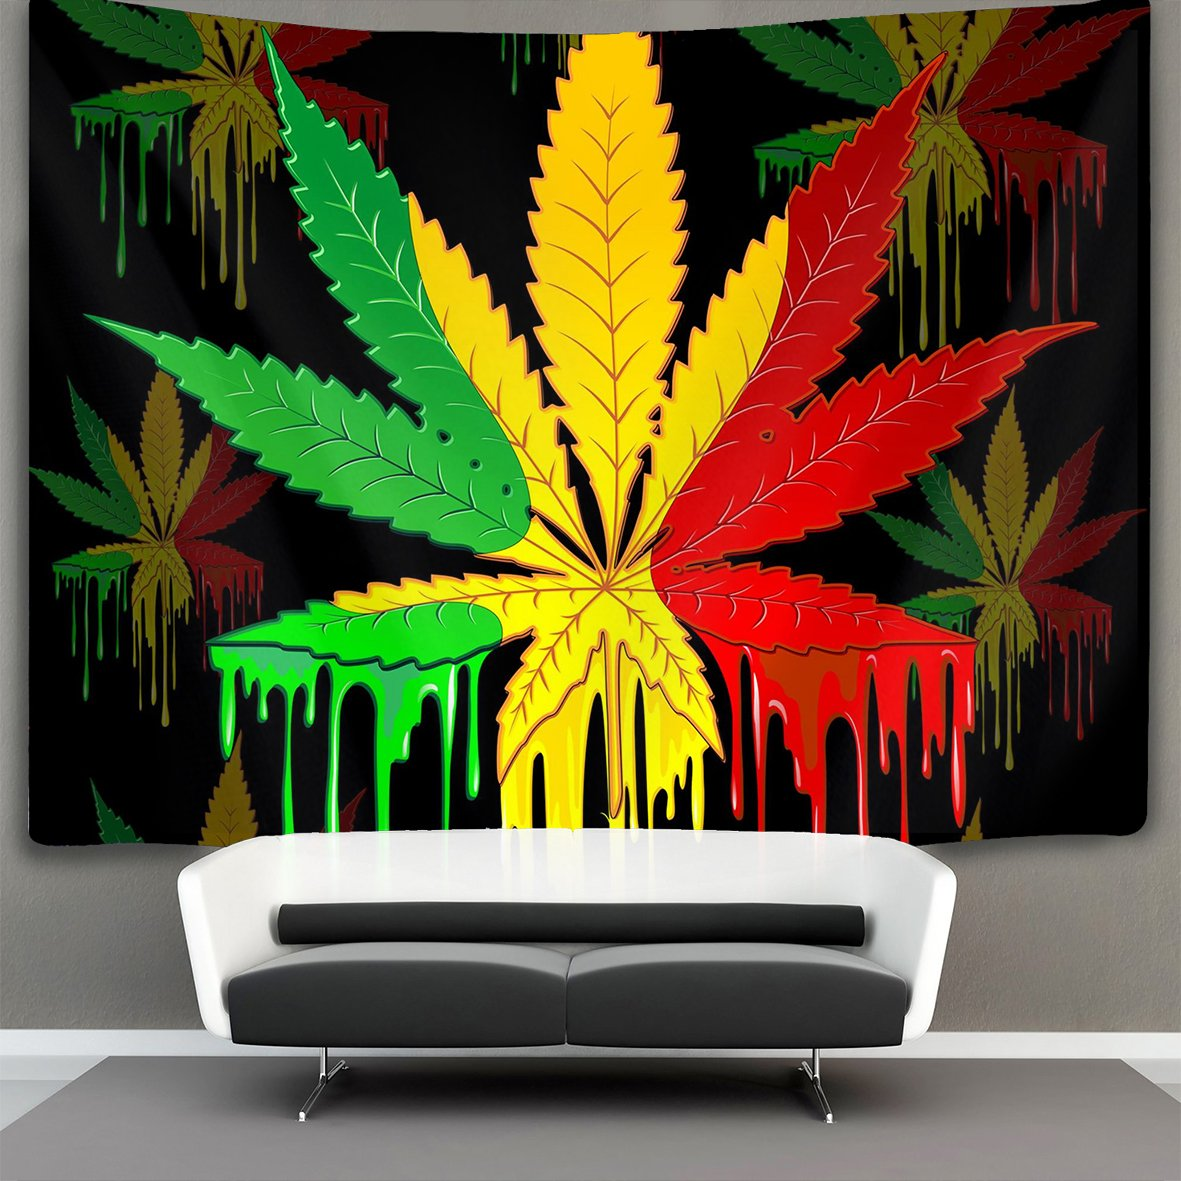 Incredible Homestores Marijuana Leaf Weed Cannabis Wall Tapestry Hippie Art Tapestry Wall Hanging Home Decor Extra Large Tablecloths 40X60 Inches For Bedroom Download Free Architecture Designs Embacsunscenecom